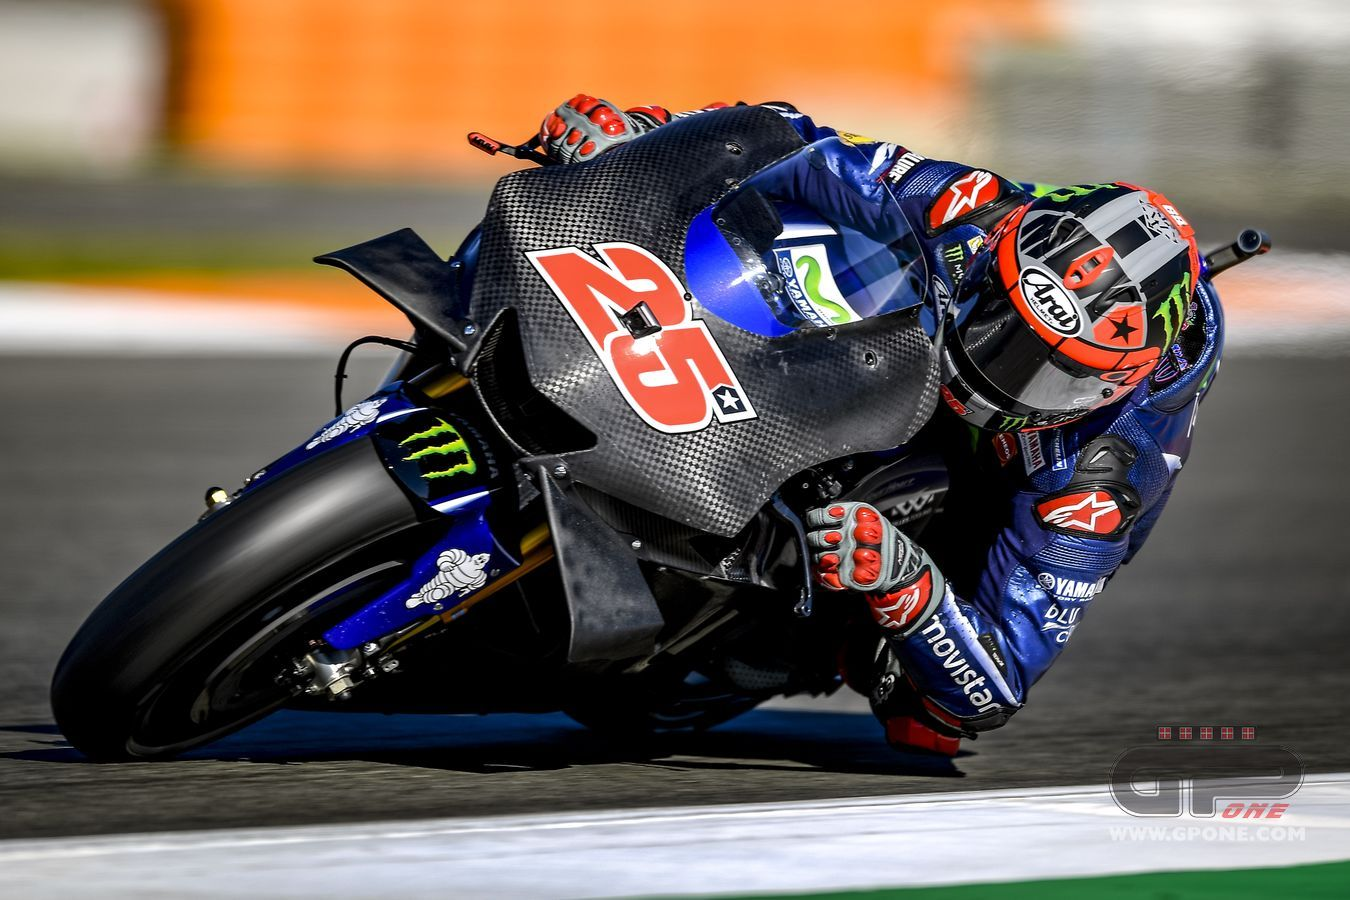 motogp the yamaha flies with vinales and zarco at valencia rossi 4th. Black Bedroom Furniture Sets. Home Design Ideas